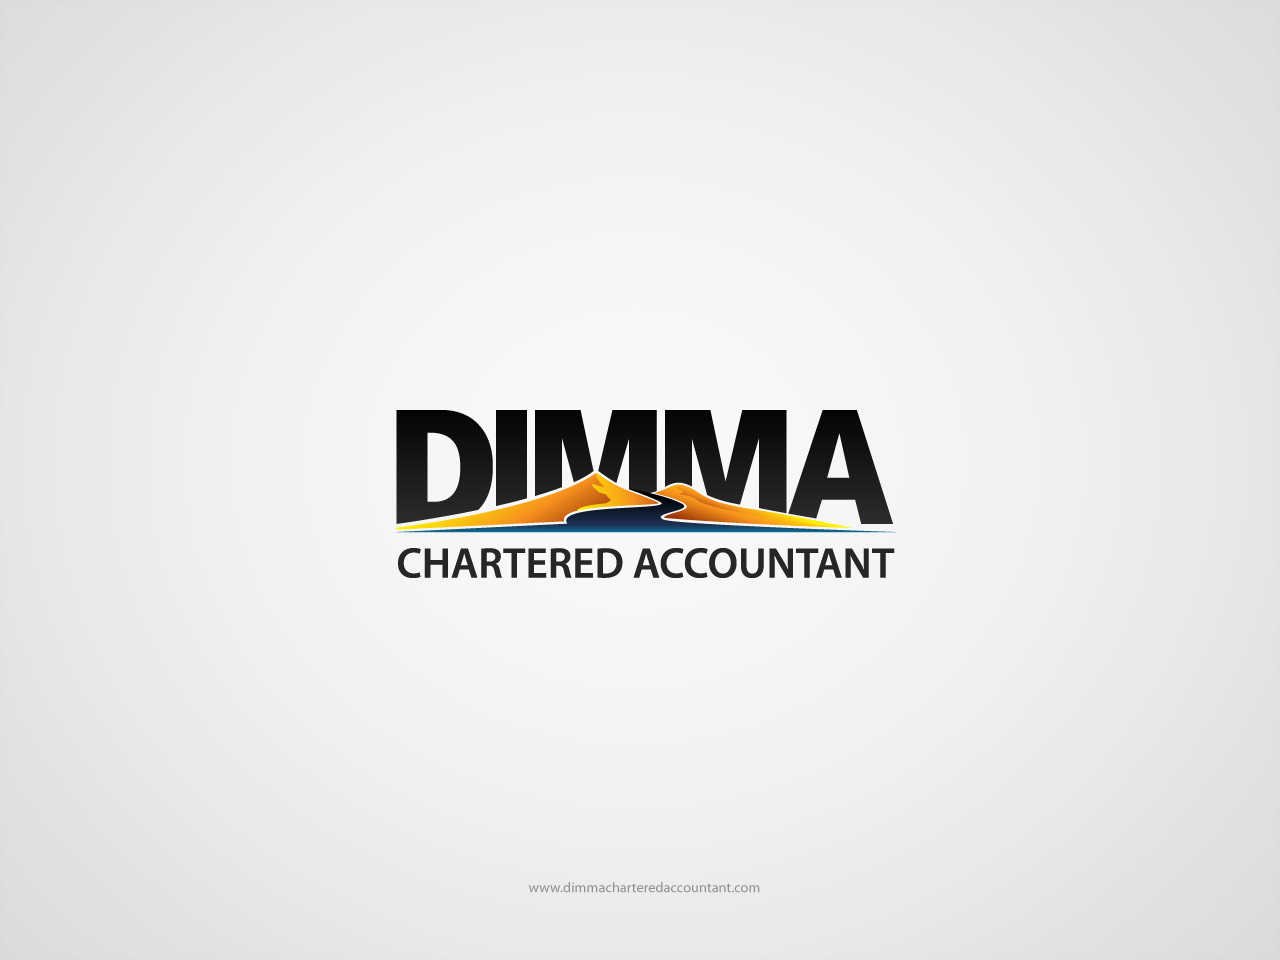 Logo Design by jpbituin - Entry No. 90 in the Logo Design Contest Creative Logo Design for Dimma Chartered Accountant.